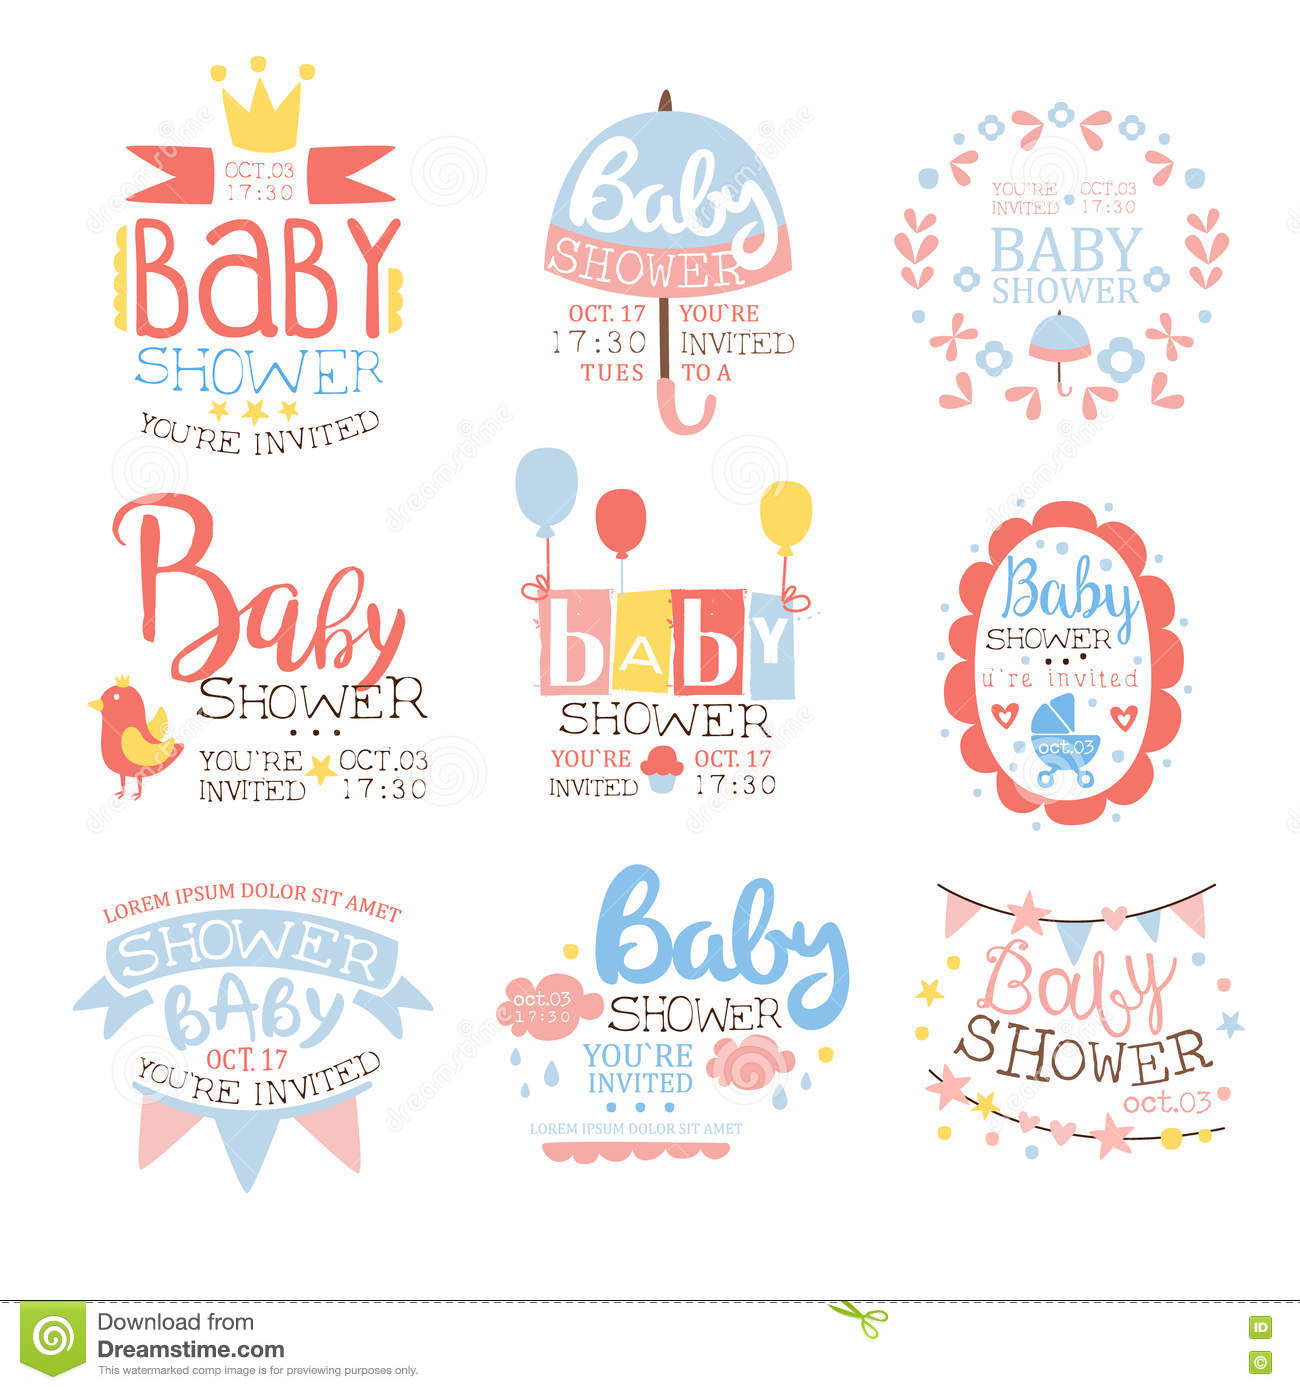 Baby Shower Invitation Template In Pastel Colors Set Of Designs